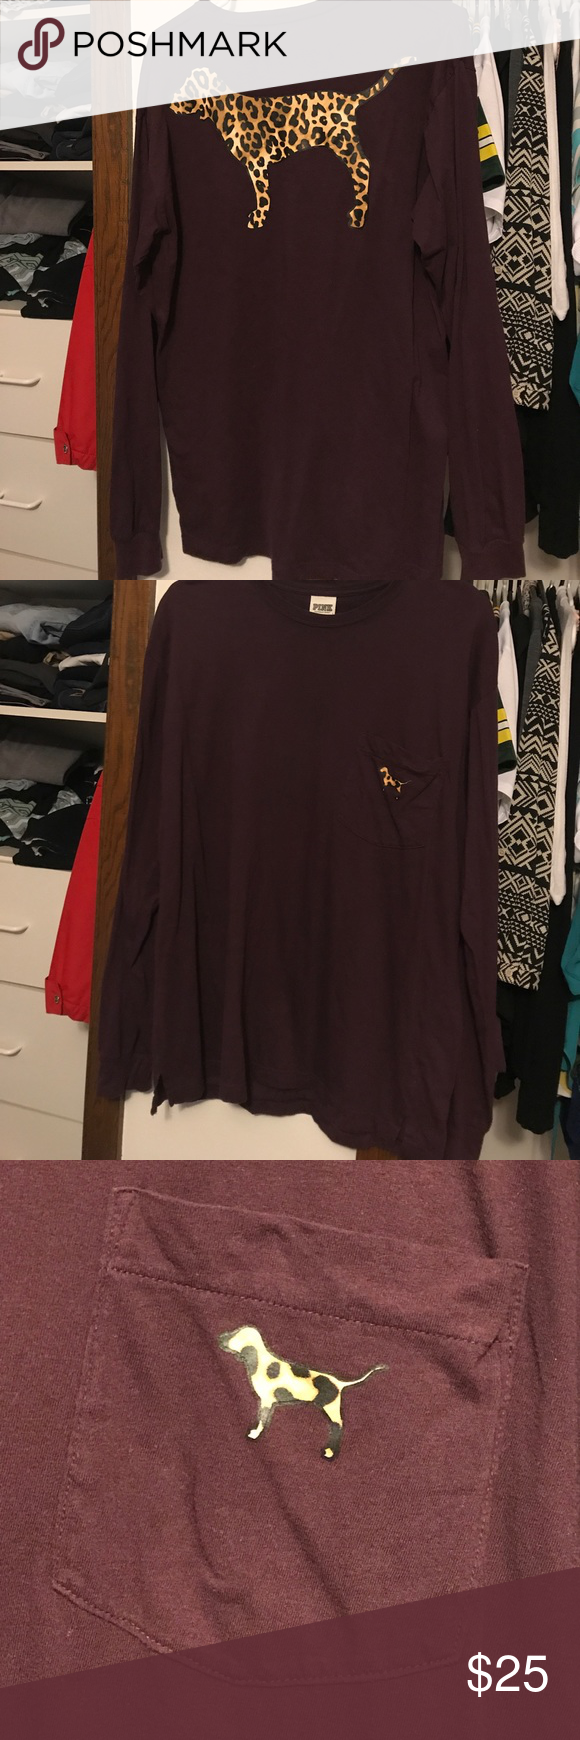 Maroon Cheetah Pocket Crew CHECK OUT MY OTHER VS PINK!!                                    Excellent condition  No flaws Always hung to dry  Beautiful cheetah logo  Pocket on front Oversized Medium  Bundle to save on shipping! PINK Victoria's Secret Tops Tees - Long Sleeve